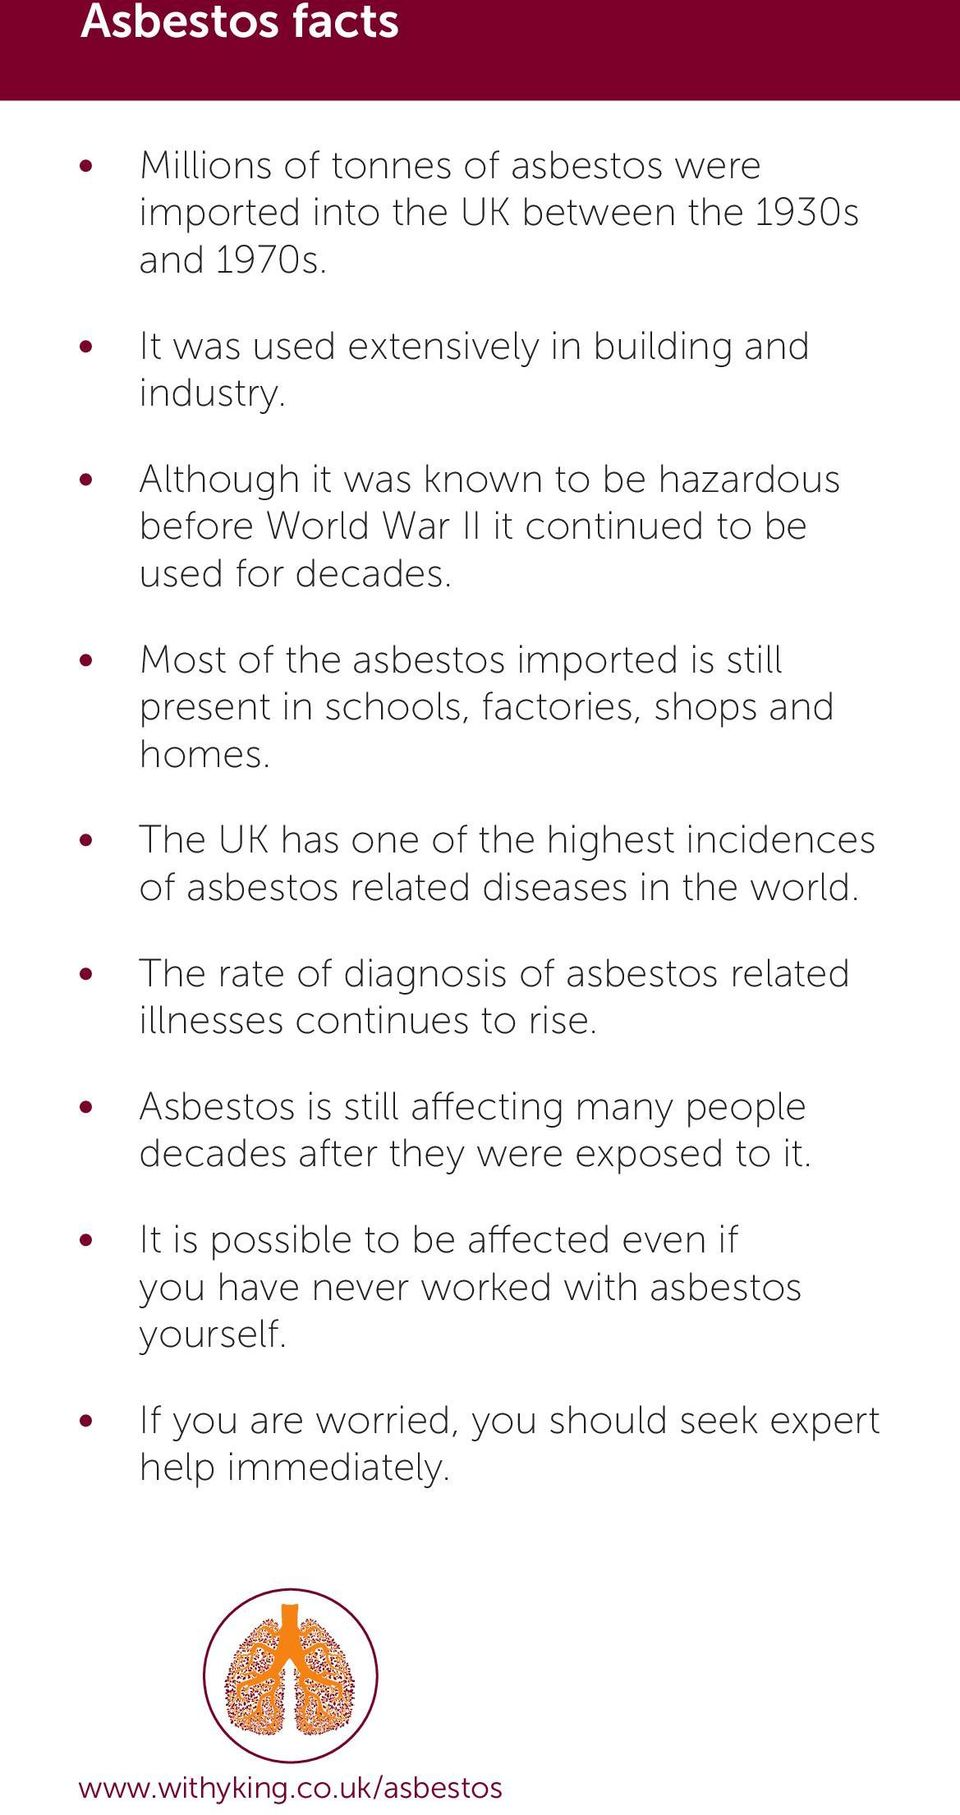 Most of the asbestos imported is still present in schools, factories, shops and homes. The UK has one of the highest incidences of asbestos related diseases in the world.